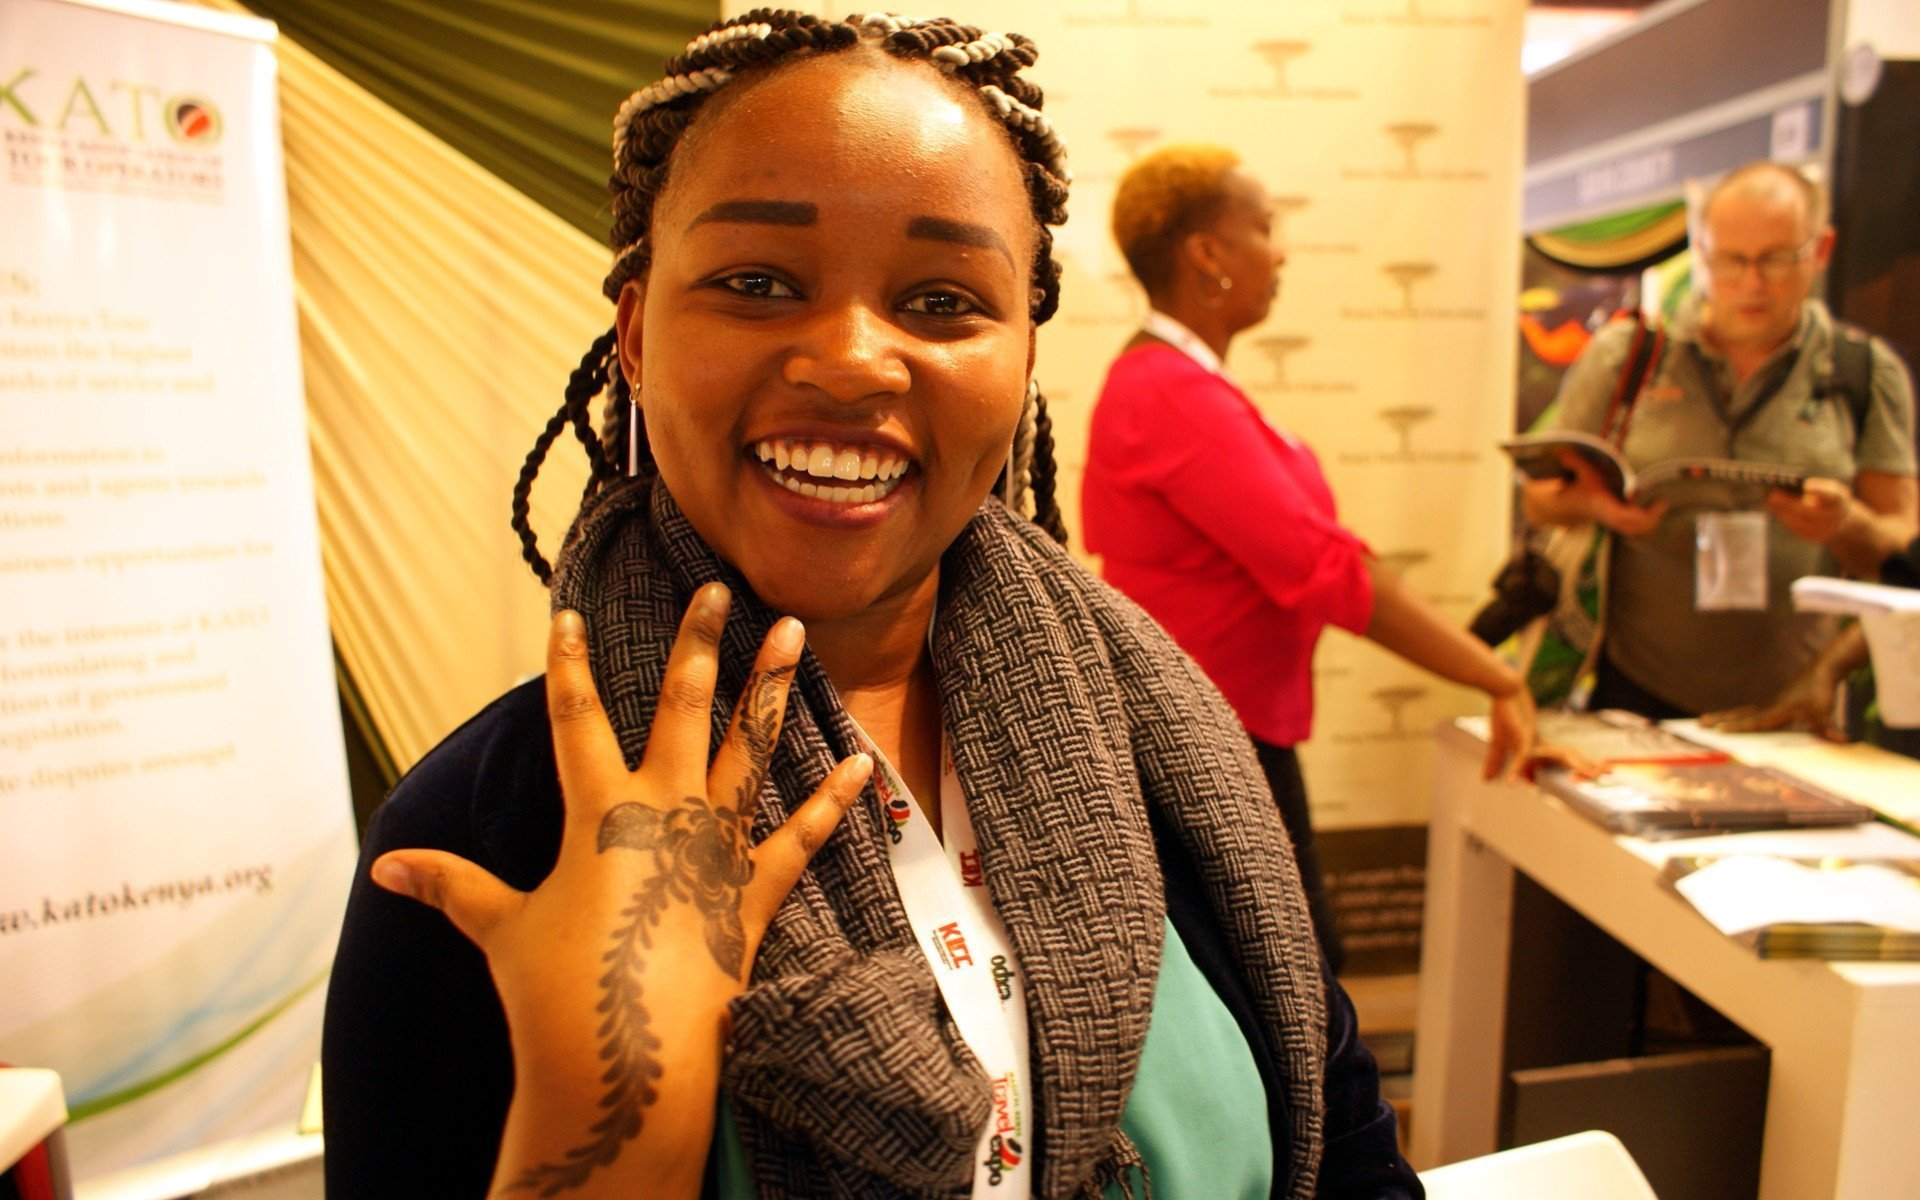 MKTE 2019 had a strong focus on innovation as a vehicle to deliver authentic and memorable experiences in travel through story telling.